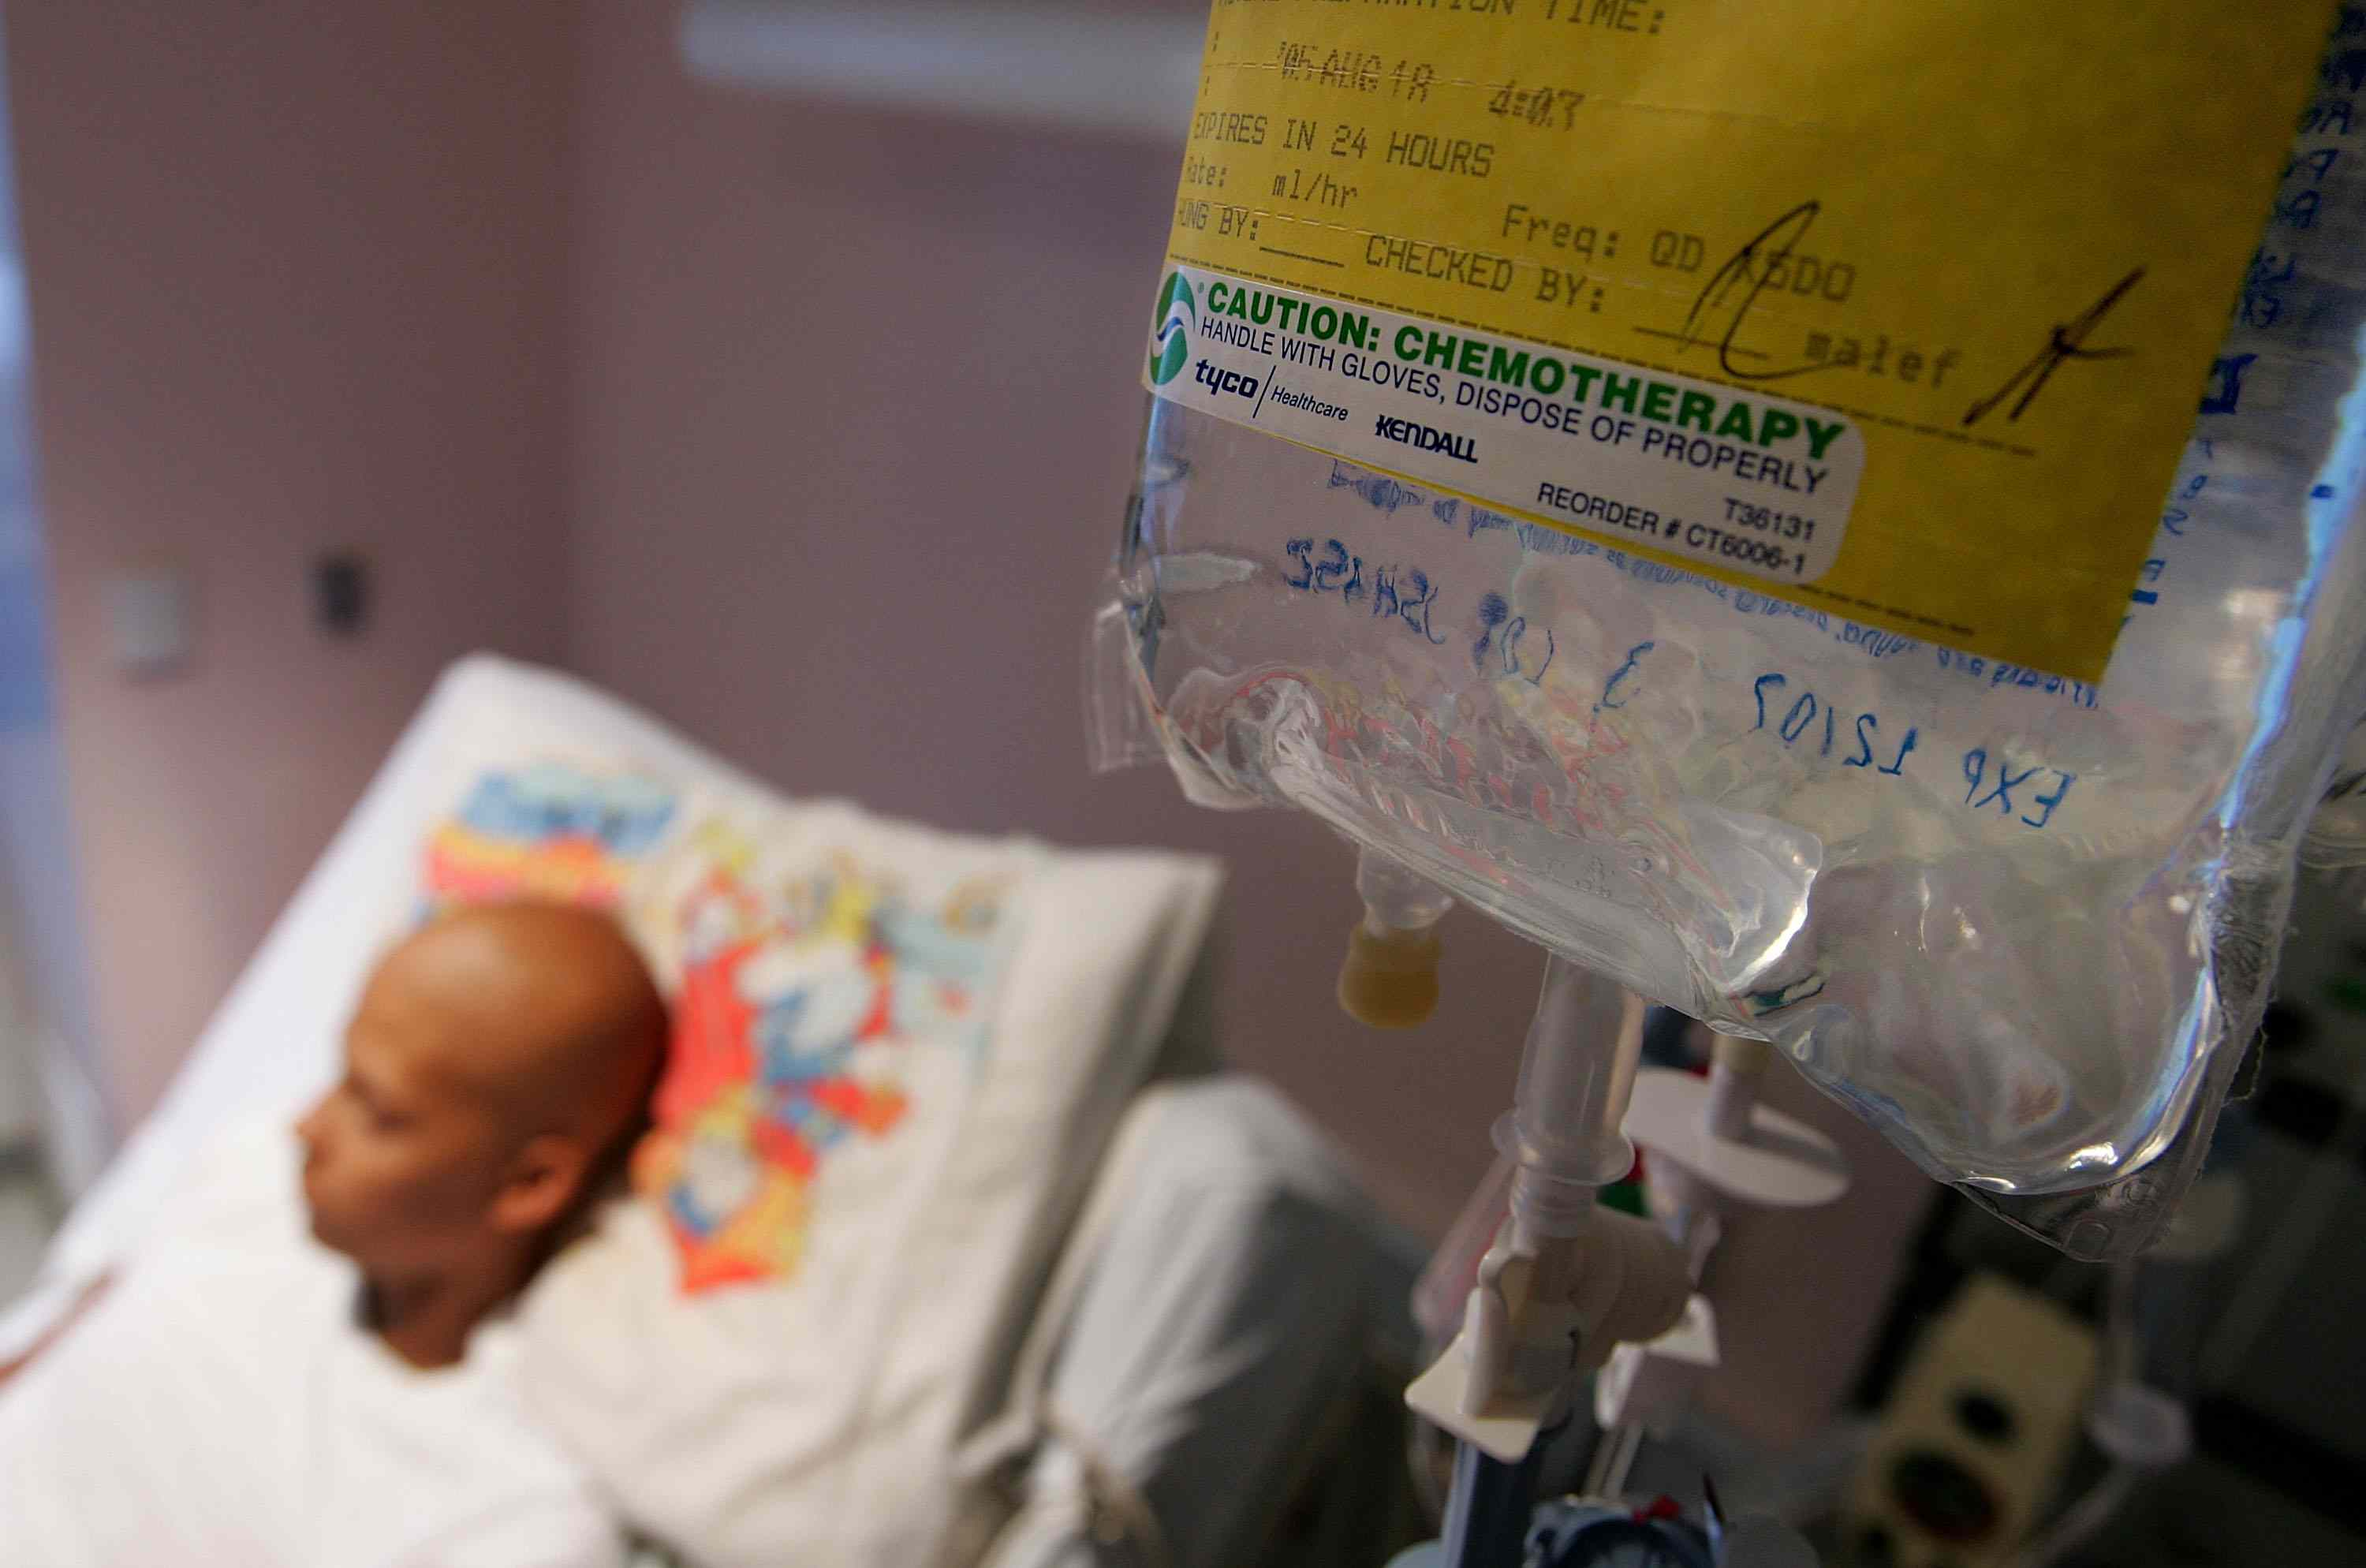 Cancer patient in a bed receiving chemotherapy